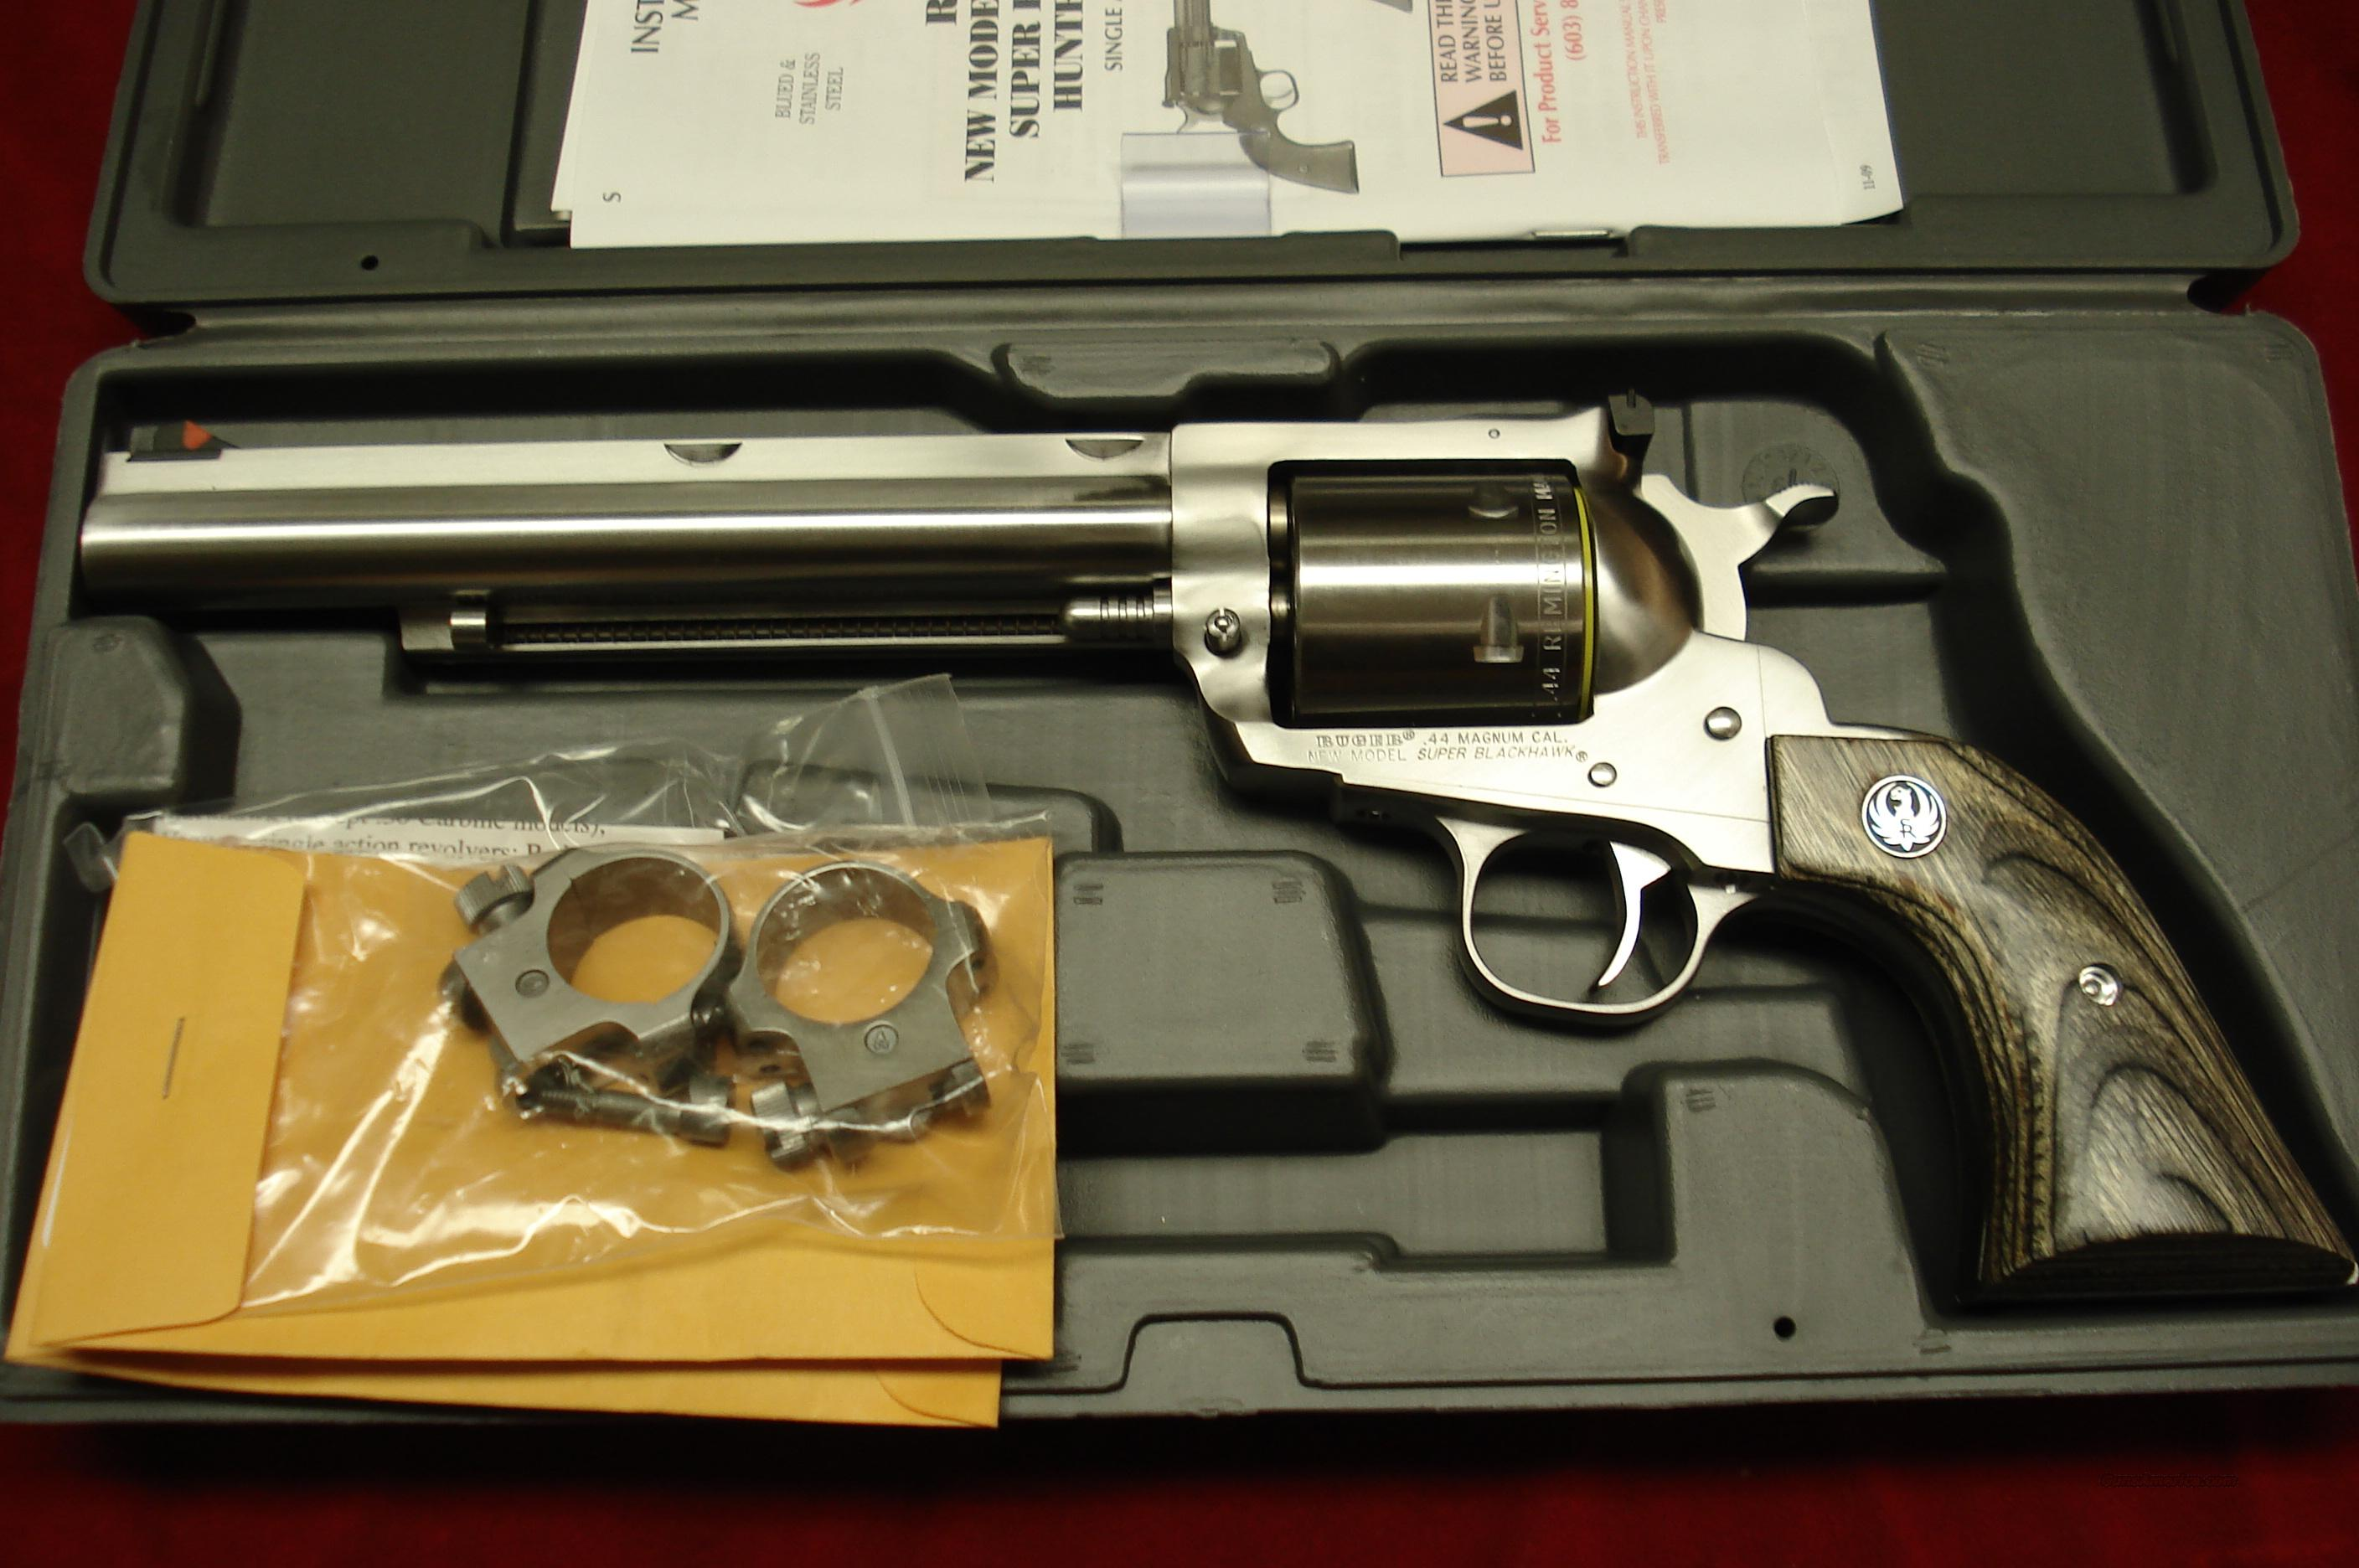 RUGER STAINLESS SUPER BLACKHAWK HUNTER 44MAG NEW (KS-47NHNN)    Guns > Pistols > Ruger Single Action Revolvers > Blackhawk Type